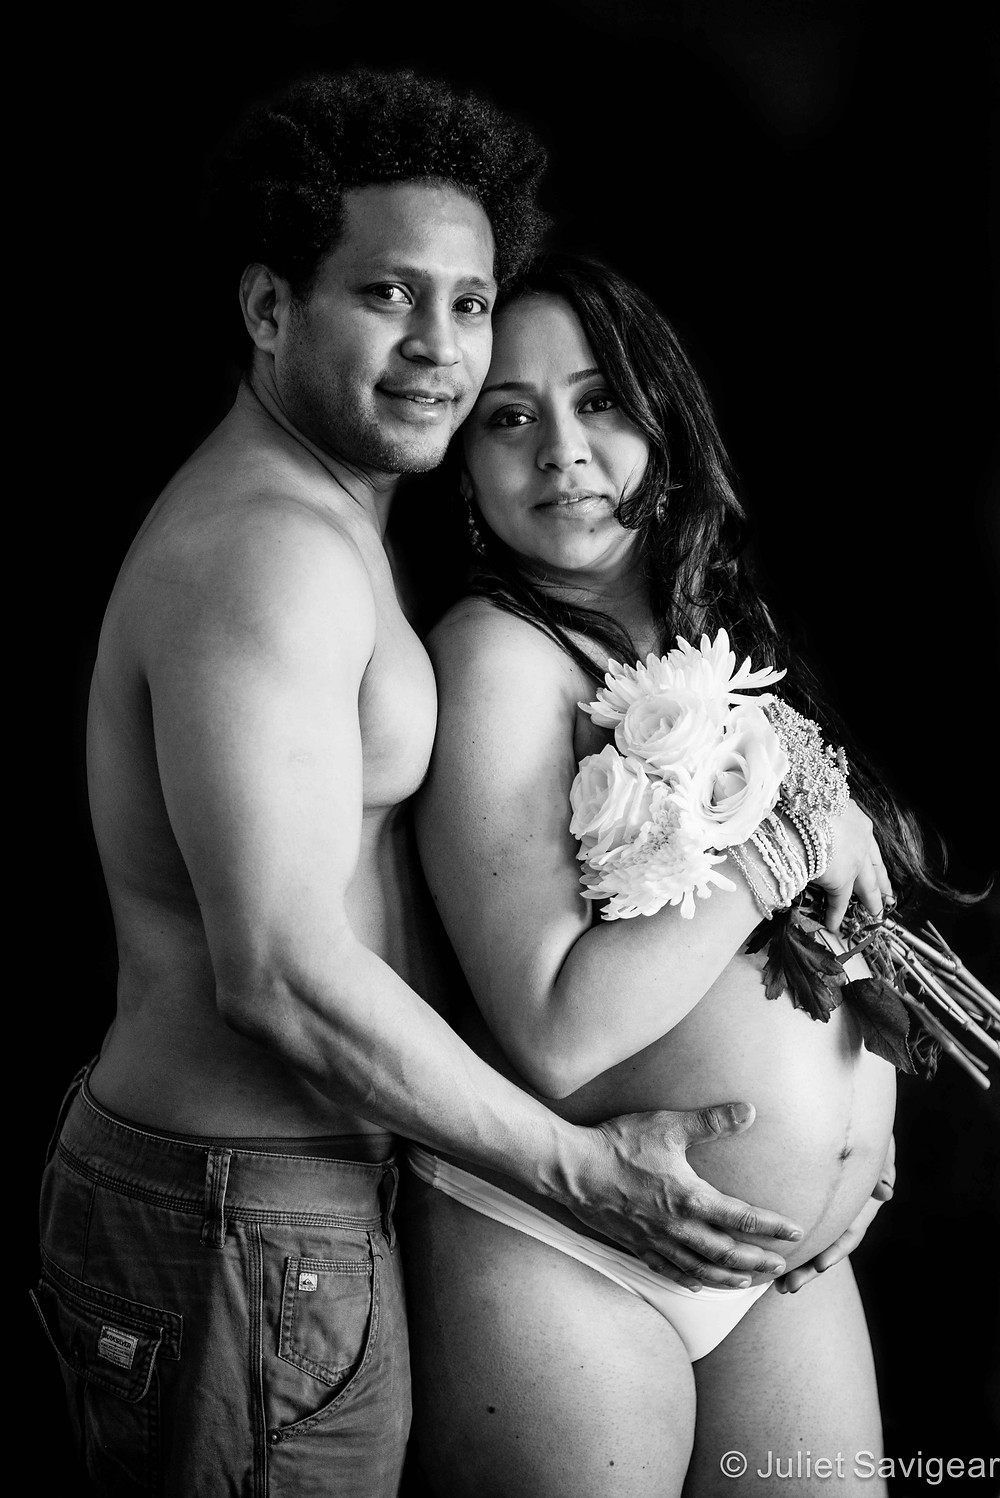 Parents-to-be - Maternity Photography, Stratford